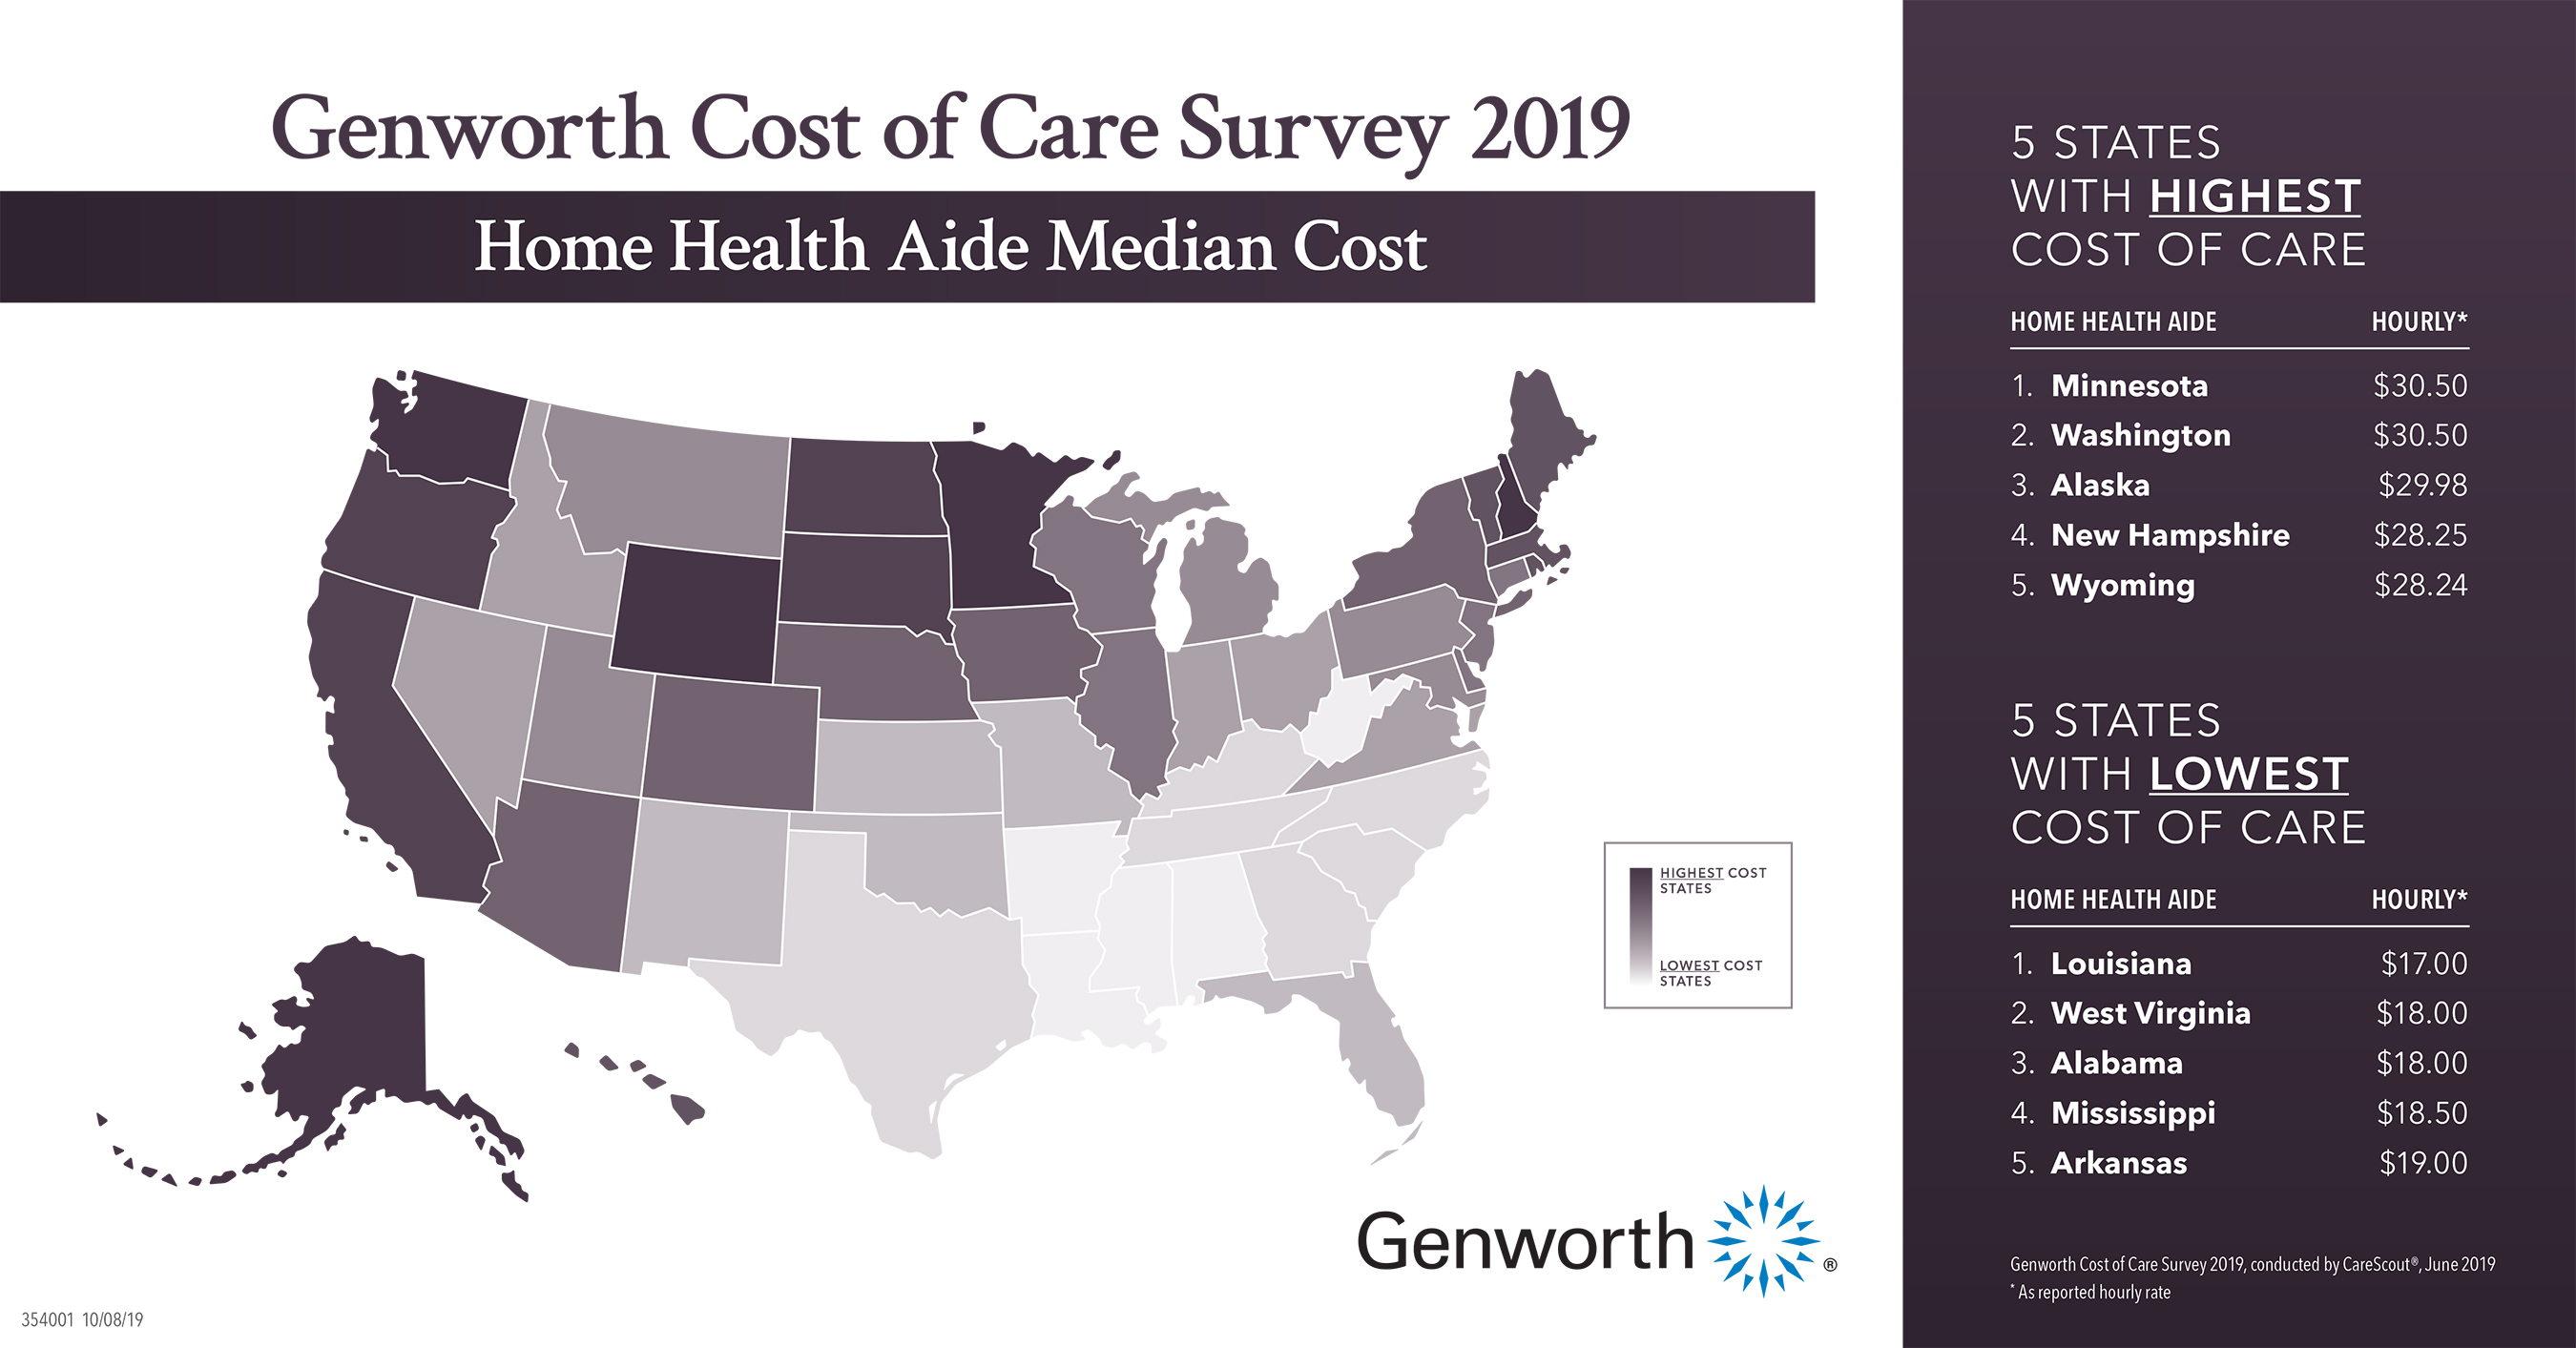 Home Health Aide Median Cost